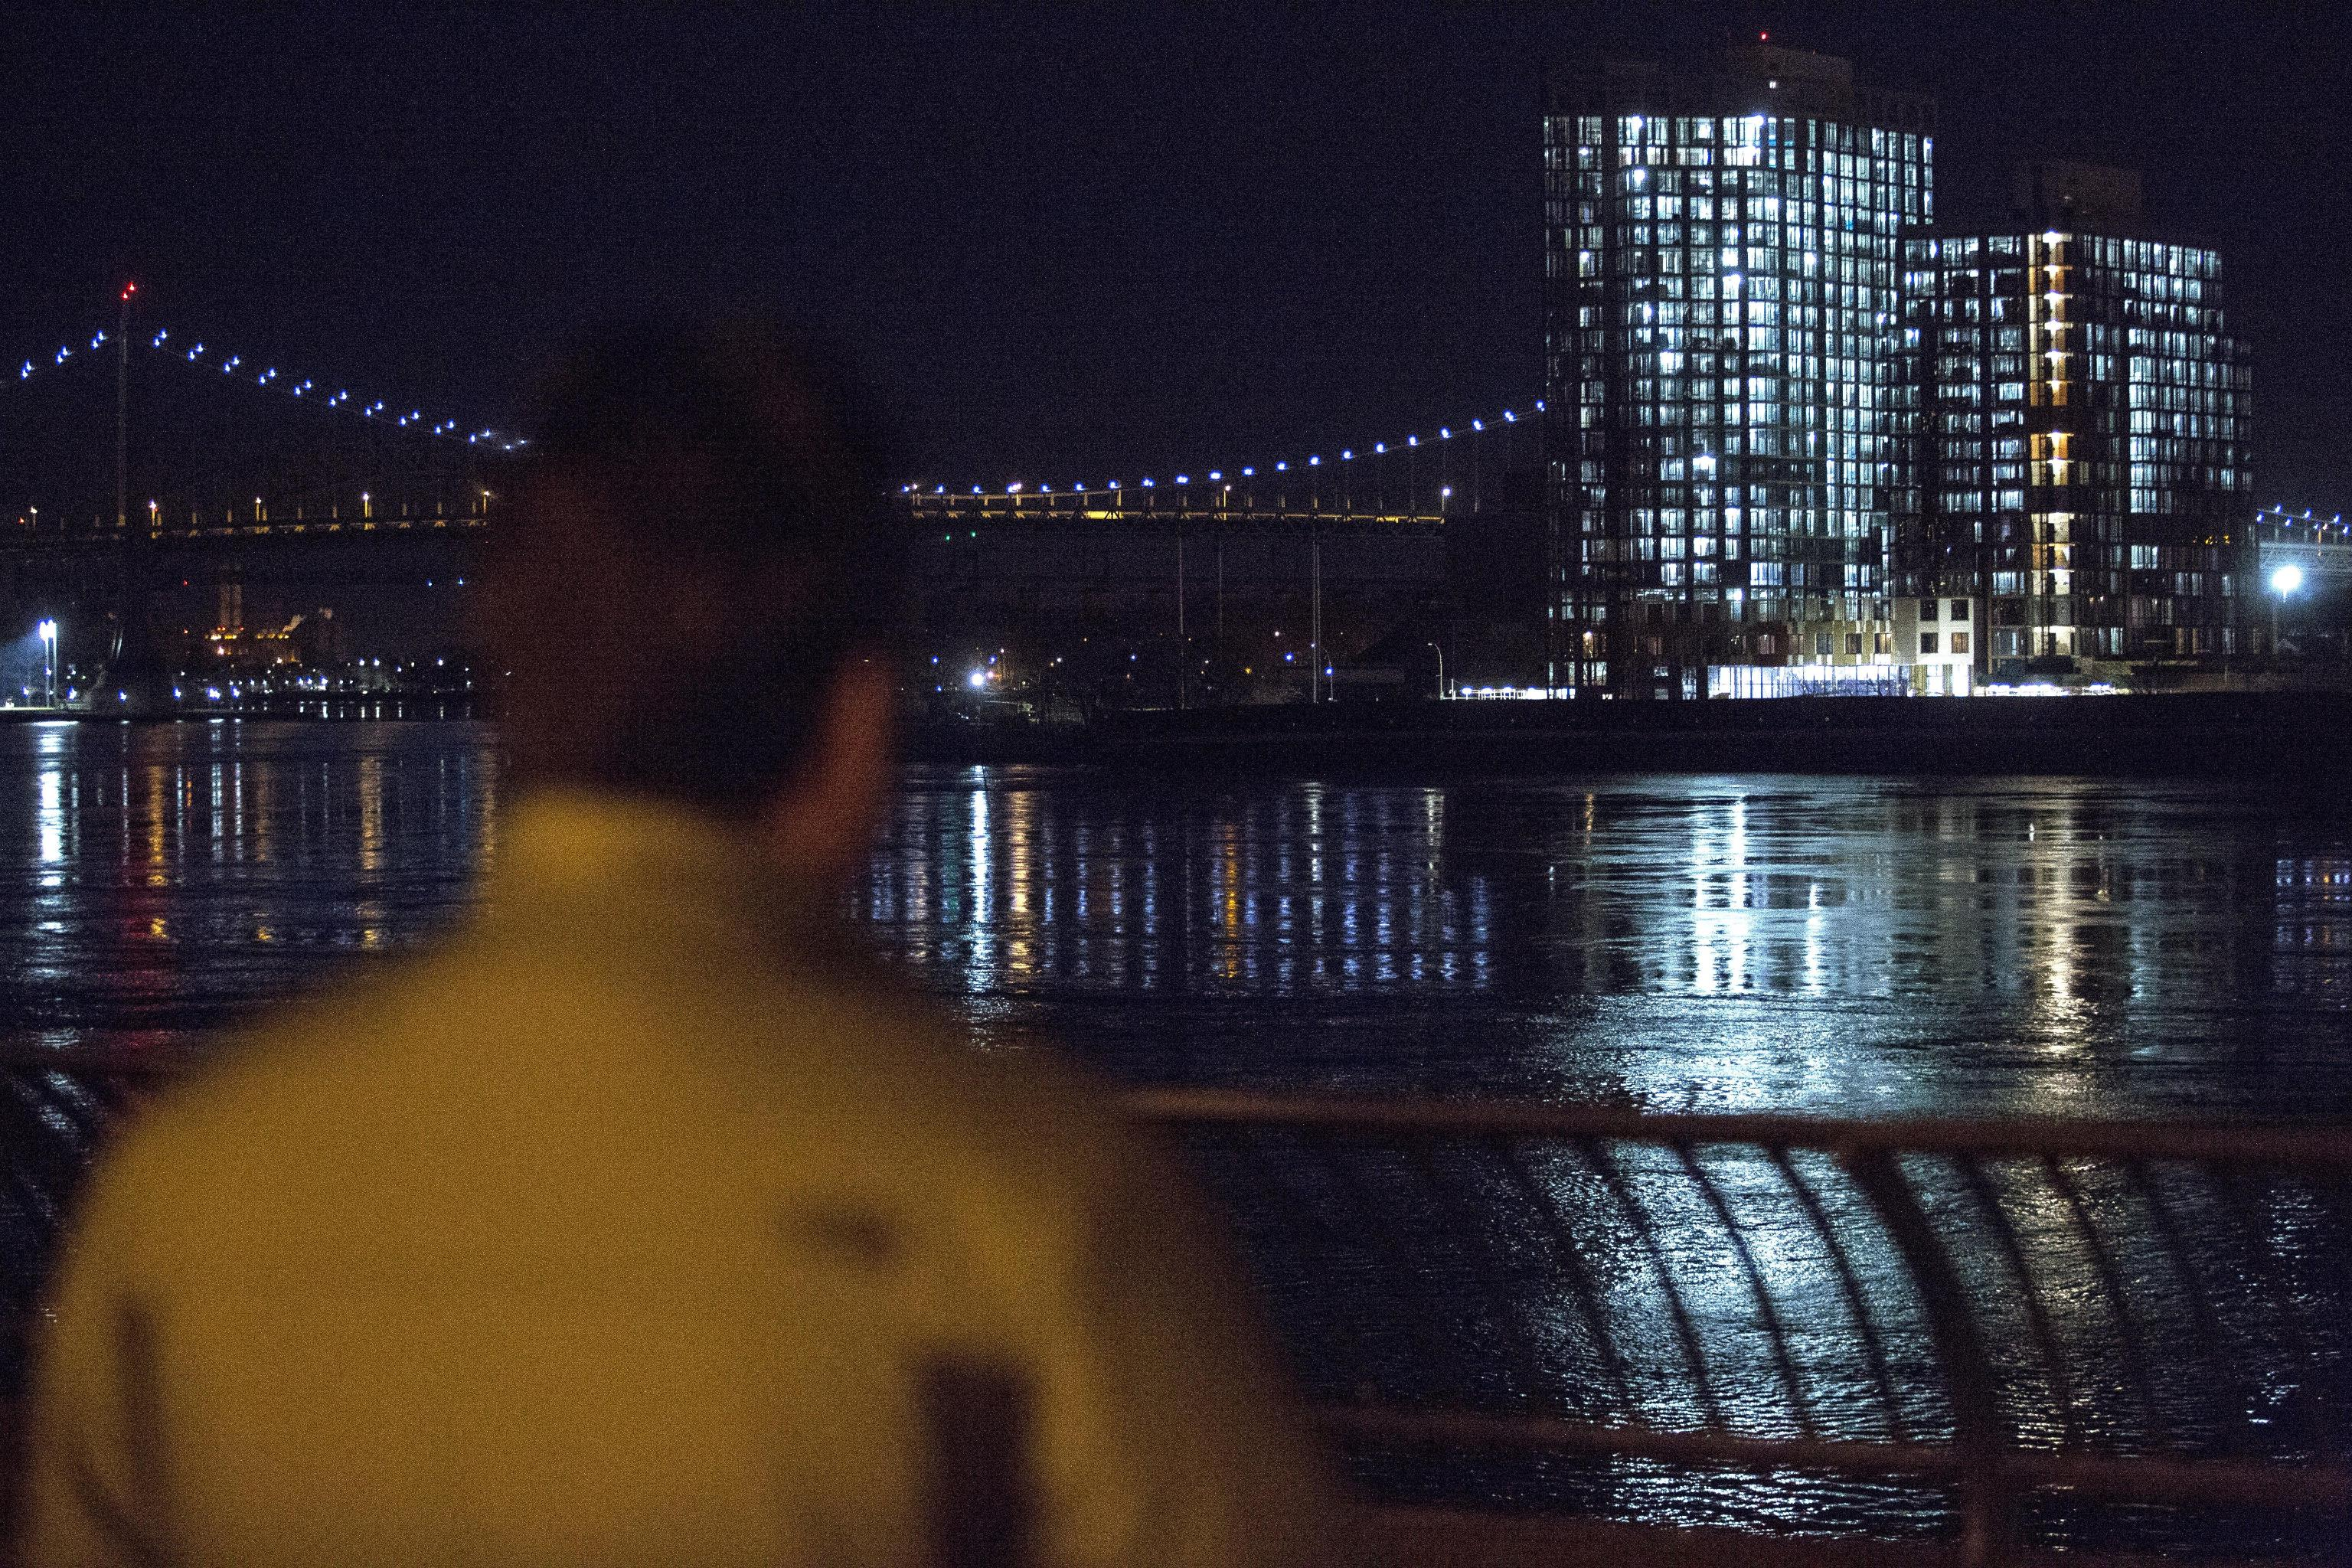 Elicottero precipita nell'East River a New York: cinque morti